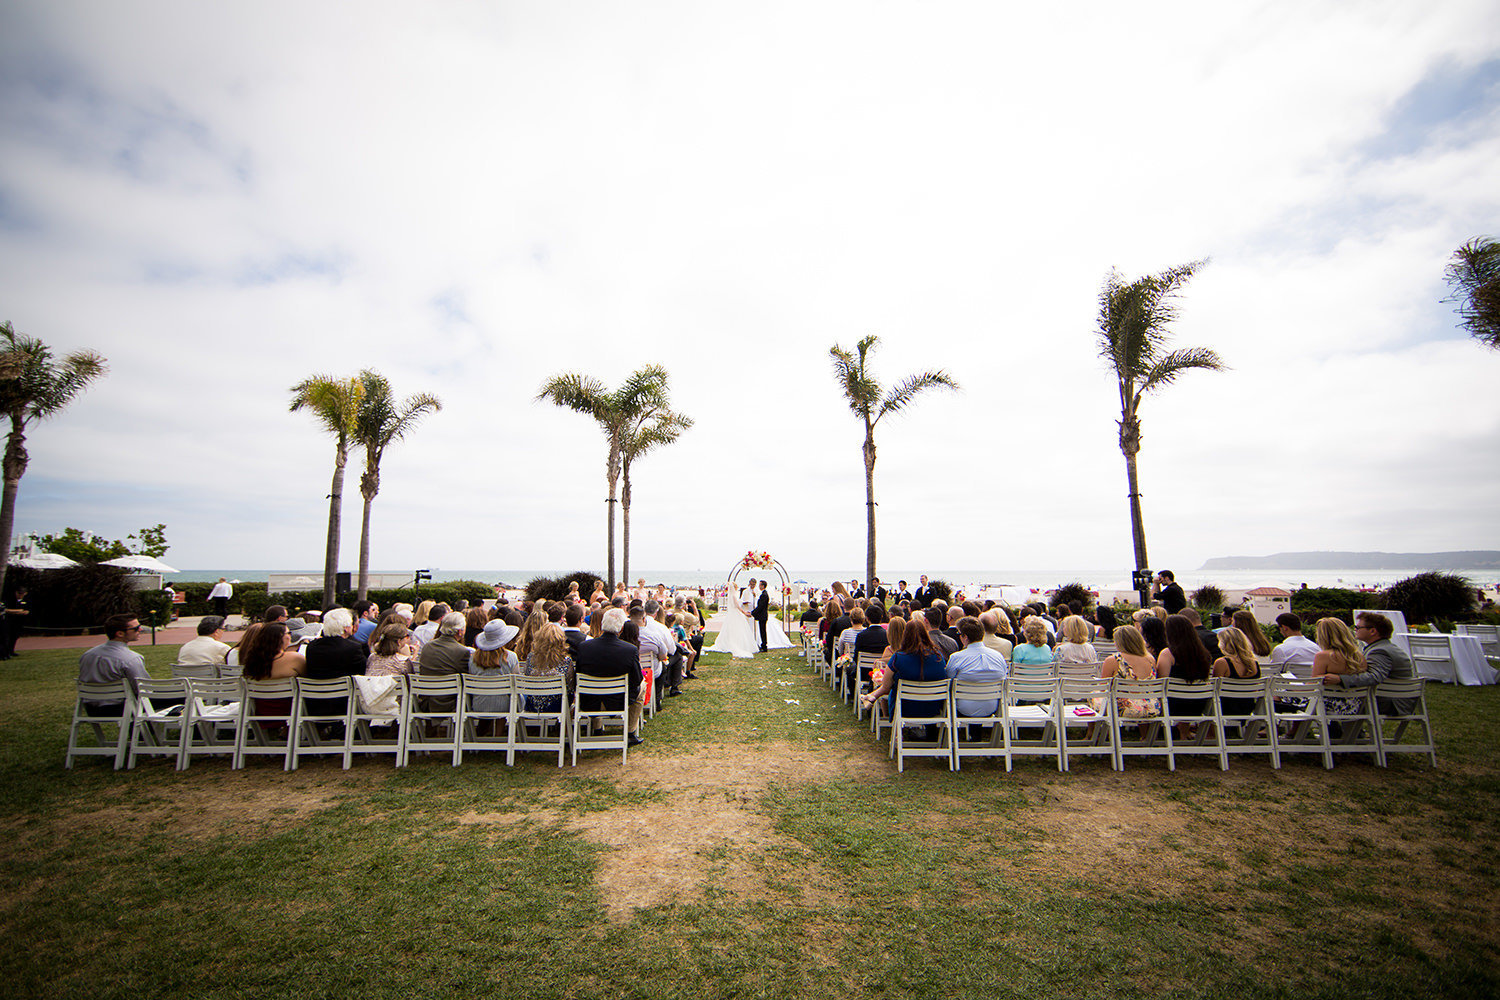 Outdoor wedding ceremony in Coronado California